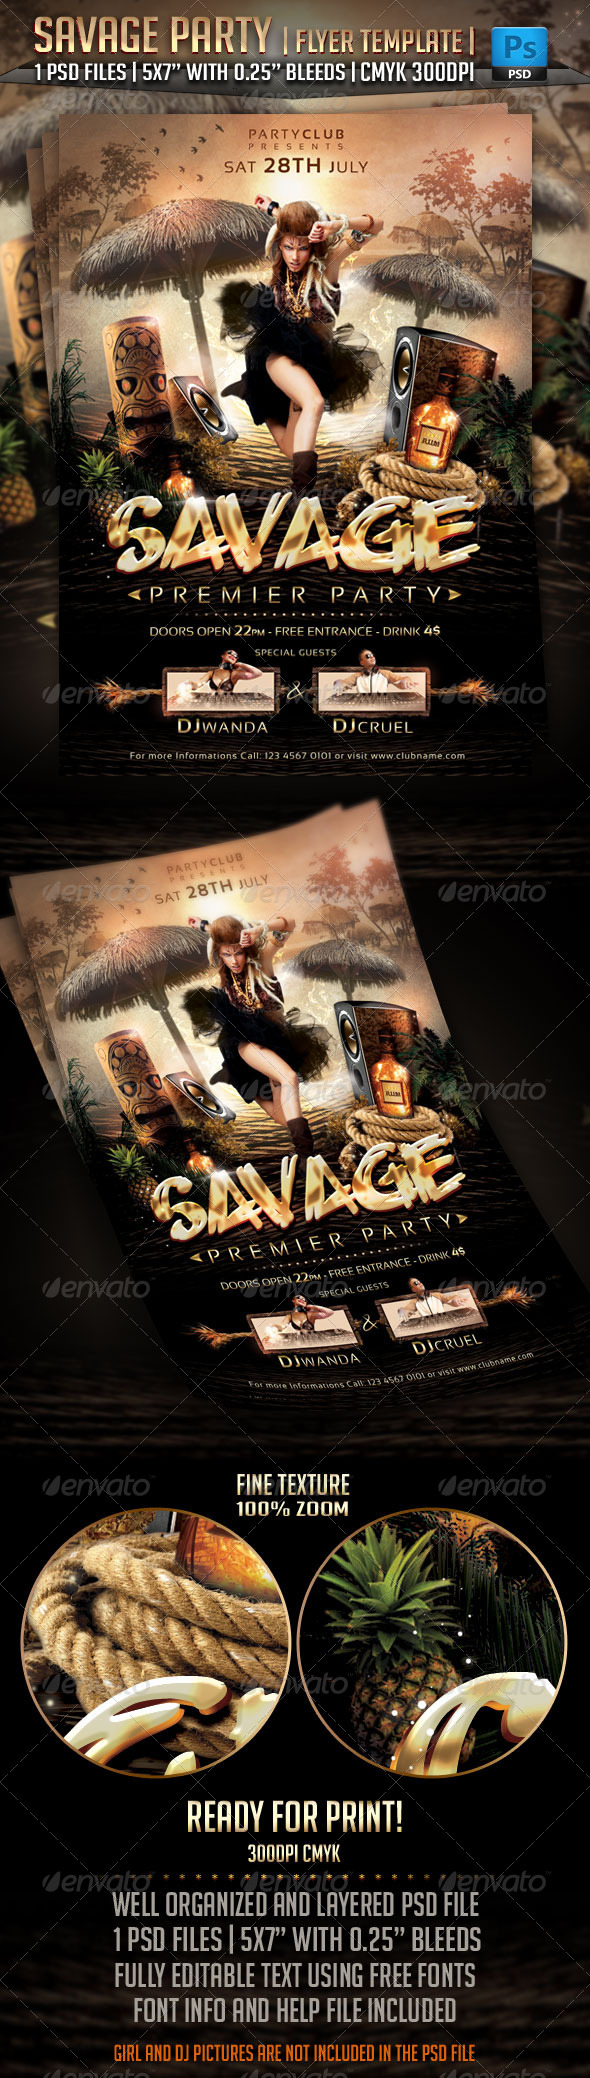 Savage Party Flyer Template - Clubs & Parties Events